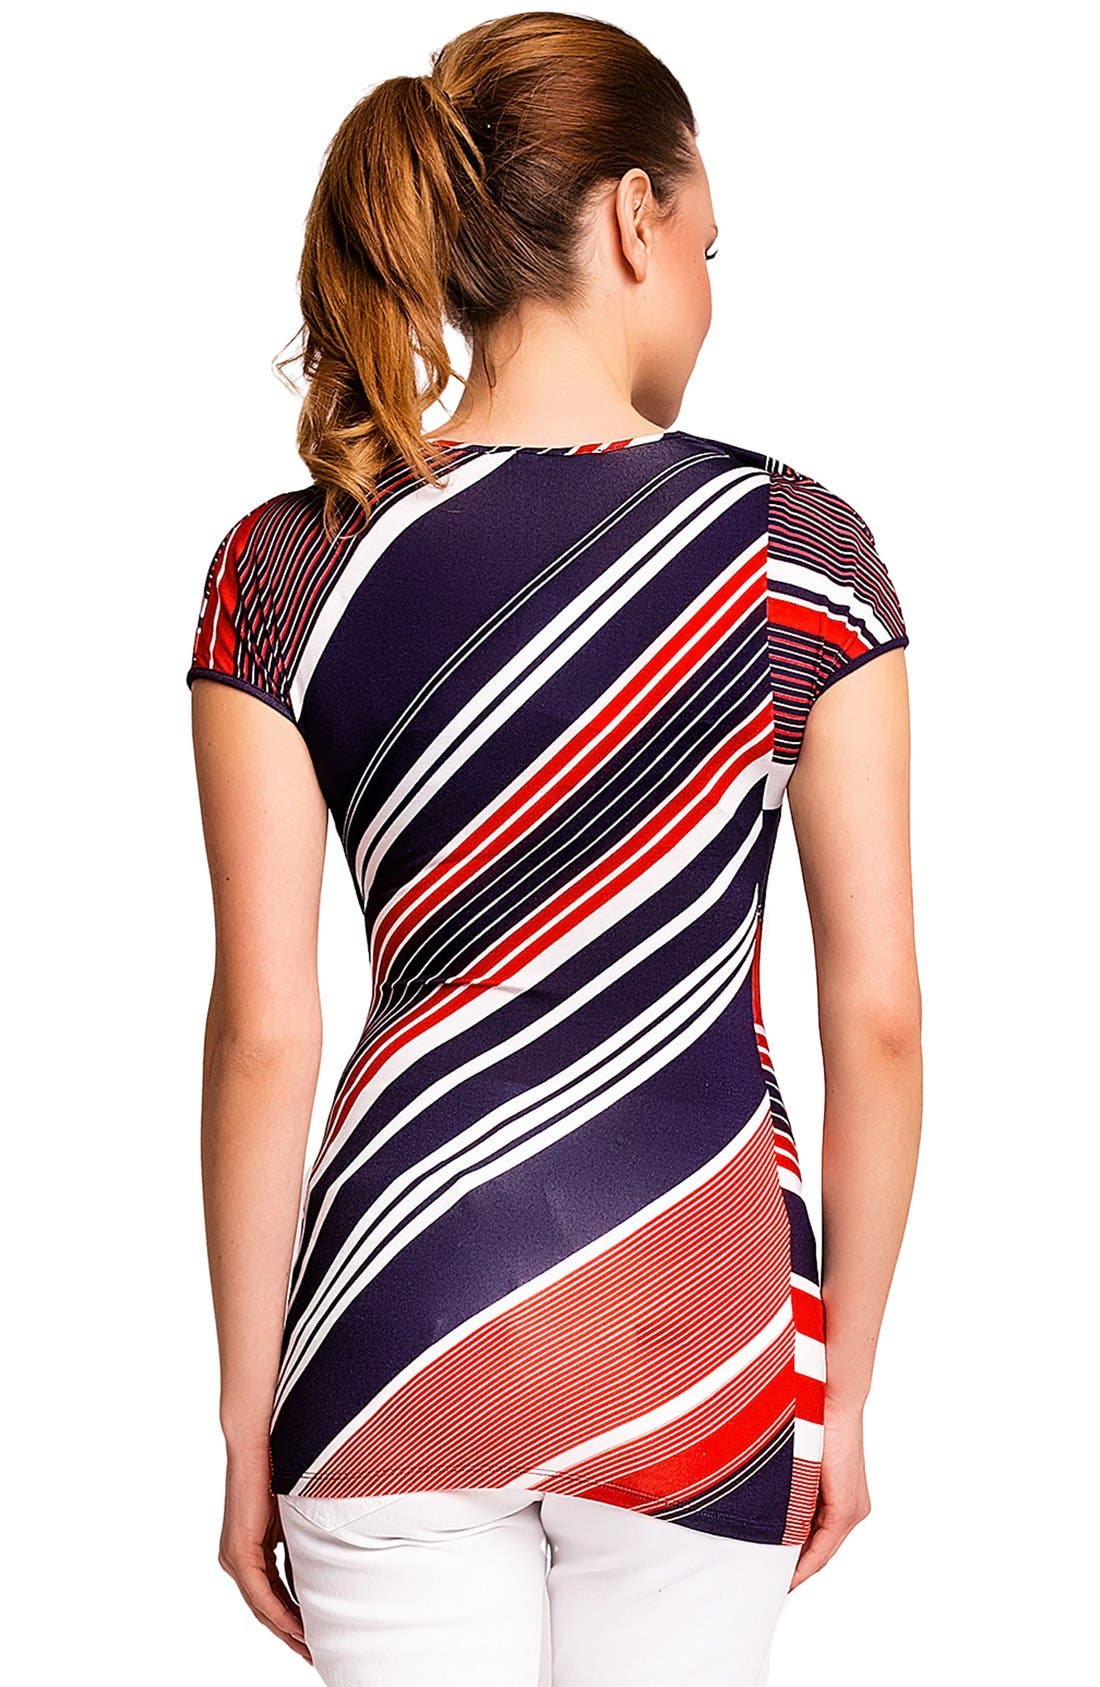 'Ginestra' Maternity/Nursing Tunic,                             Alternate thumbnail 2, color,                             RED/BLUE STRIPES